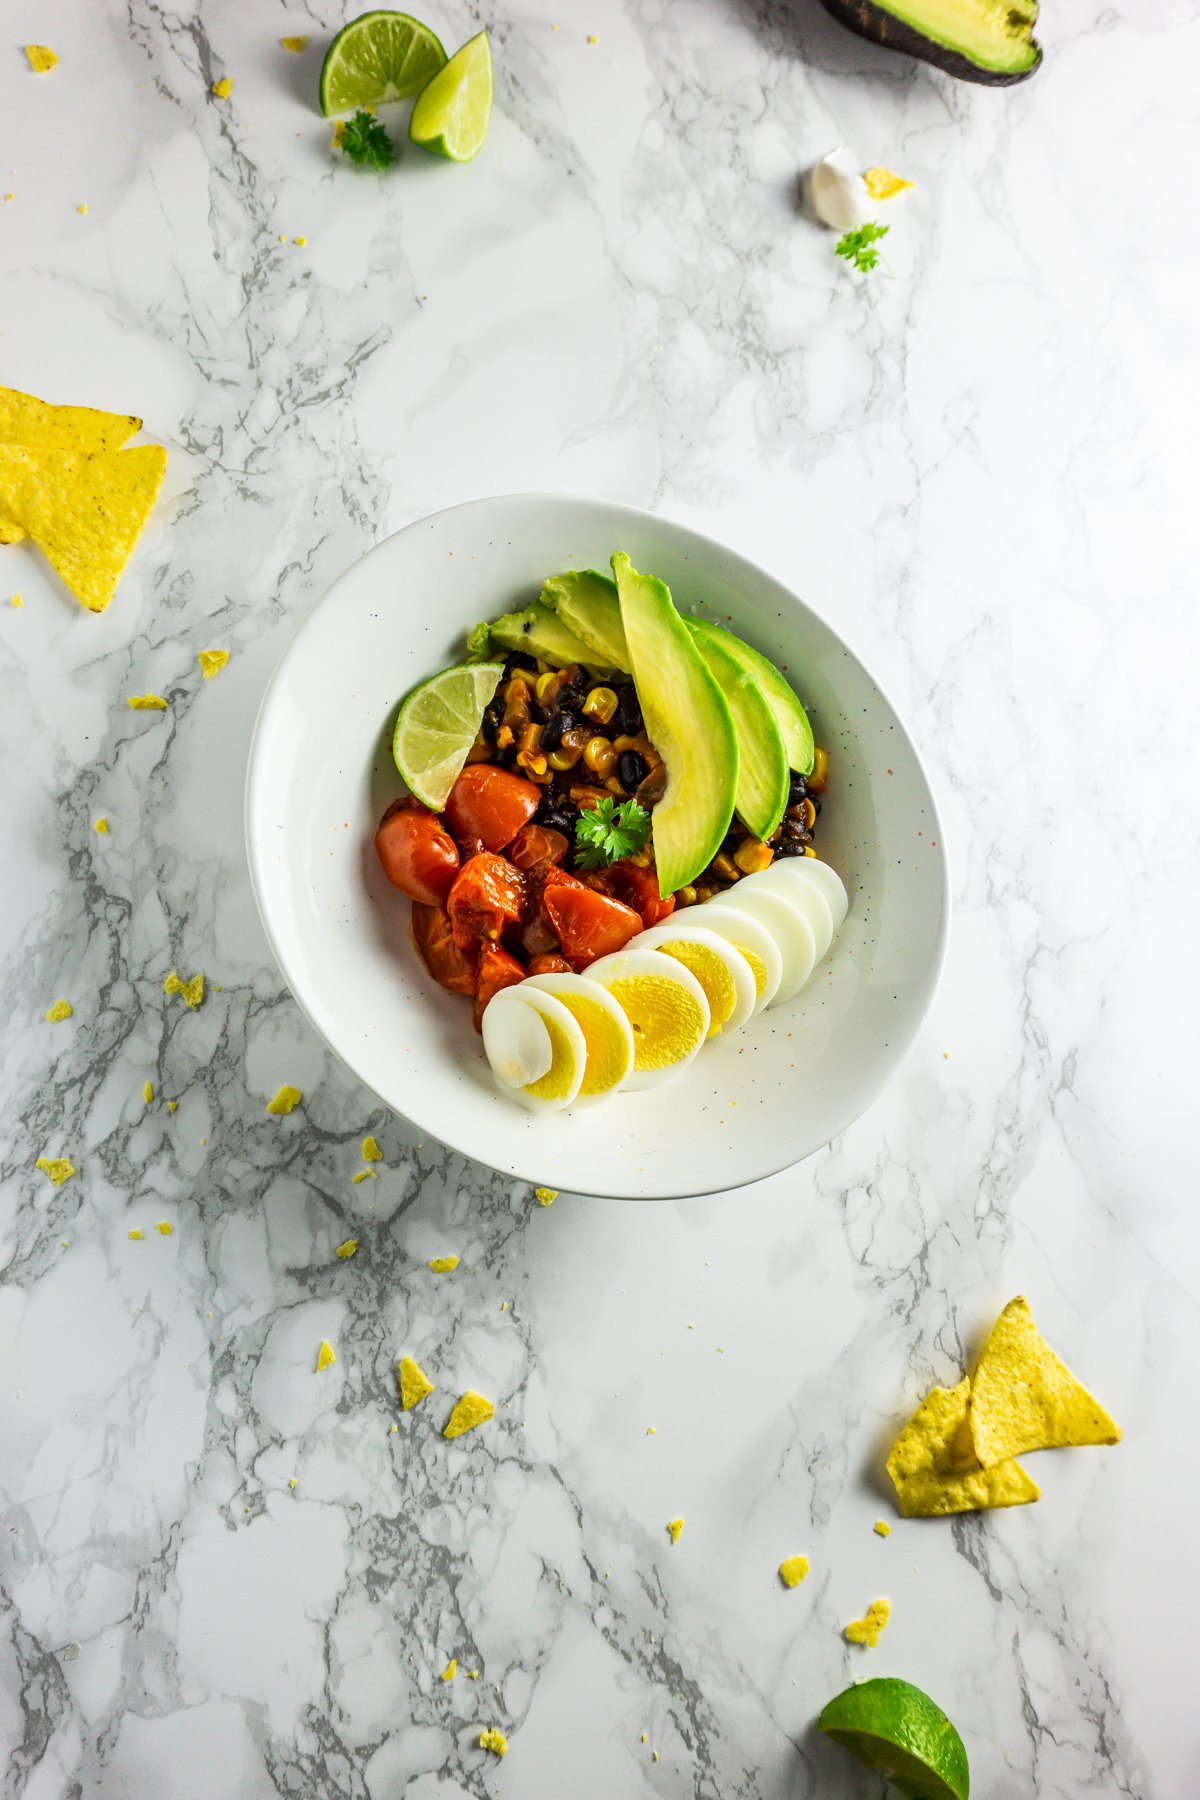 Spicy Breakfast Bowl with nachos, lime, garlic, and avocado photographed on a marble background